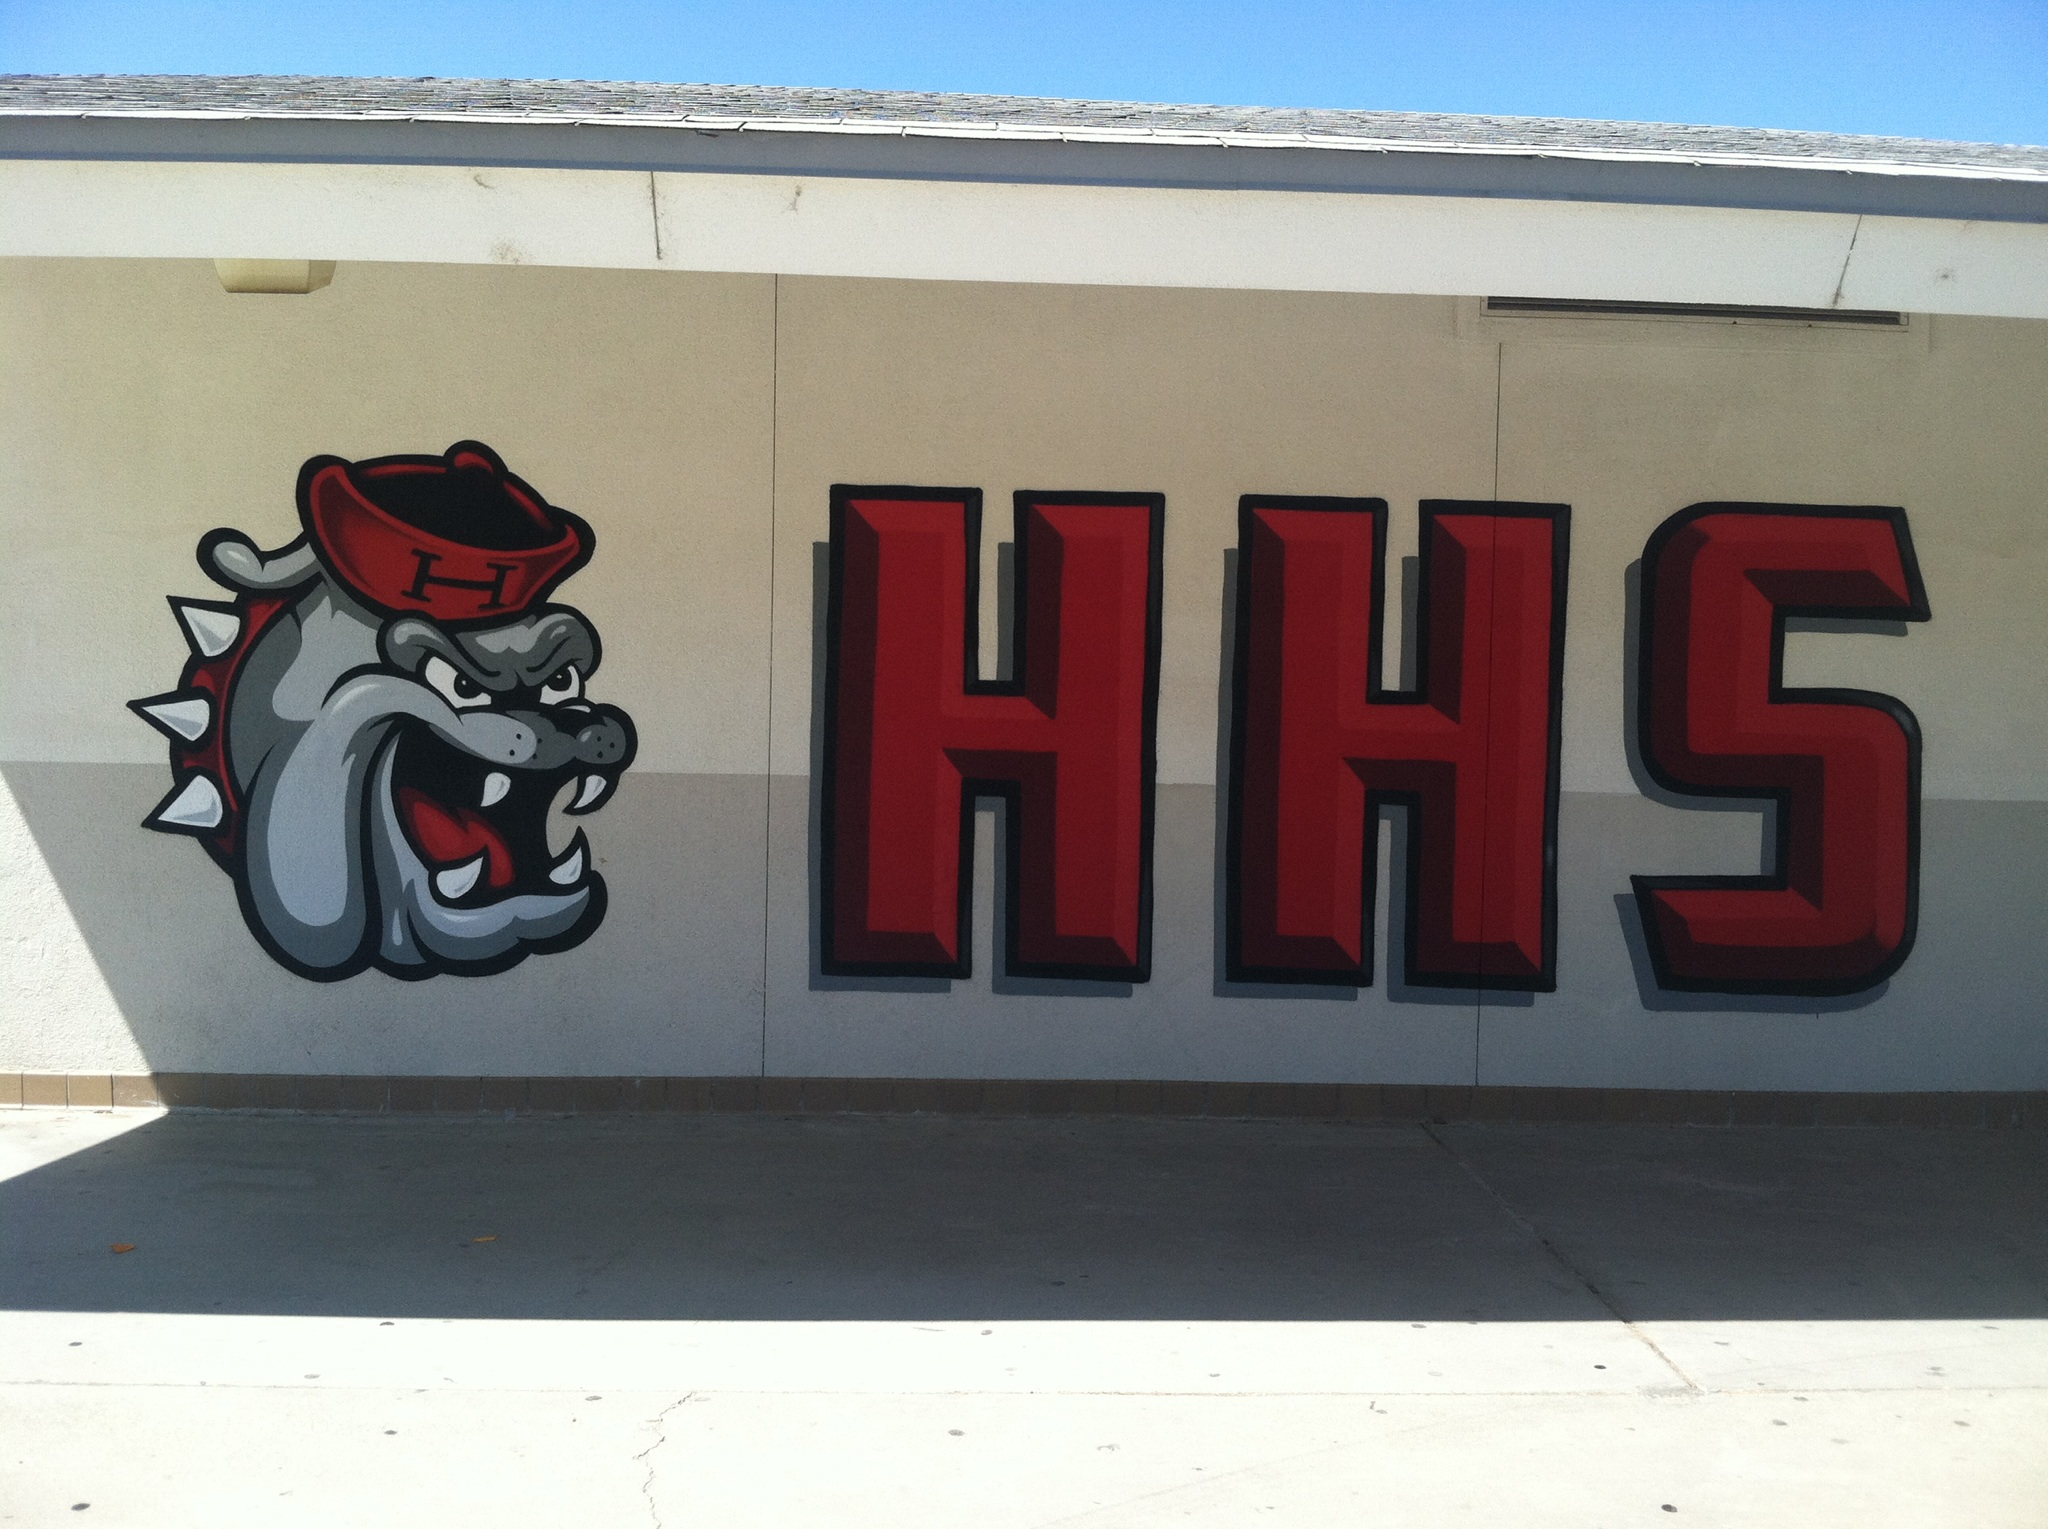 Hanford High School